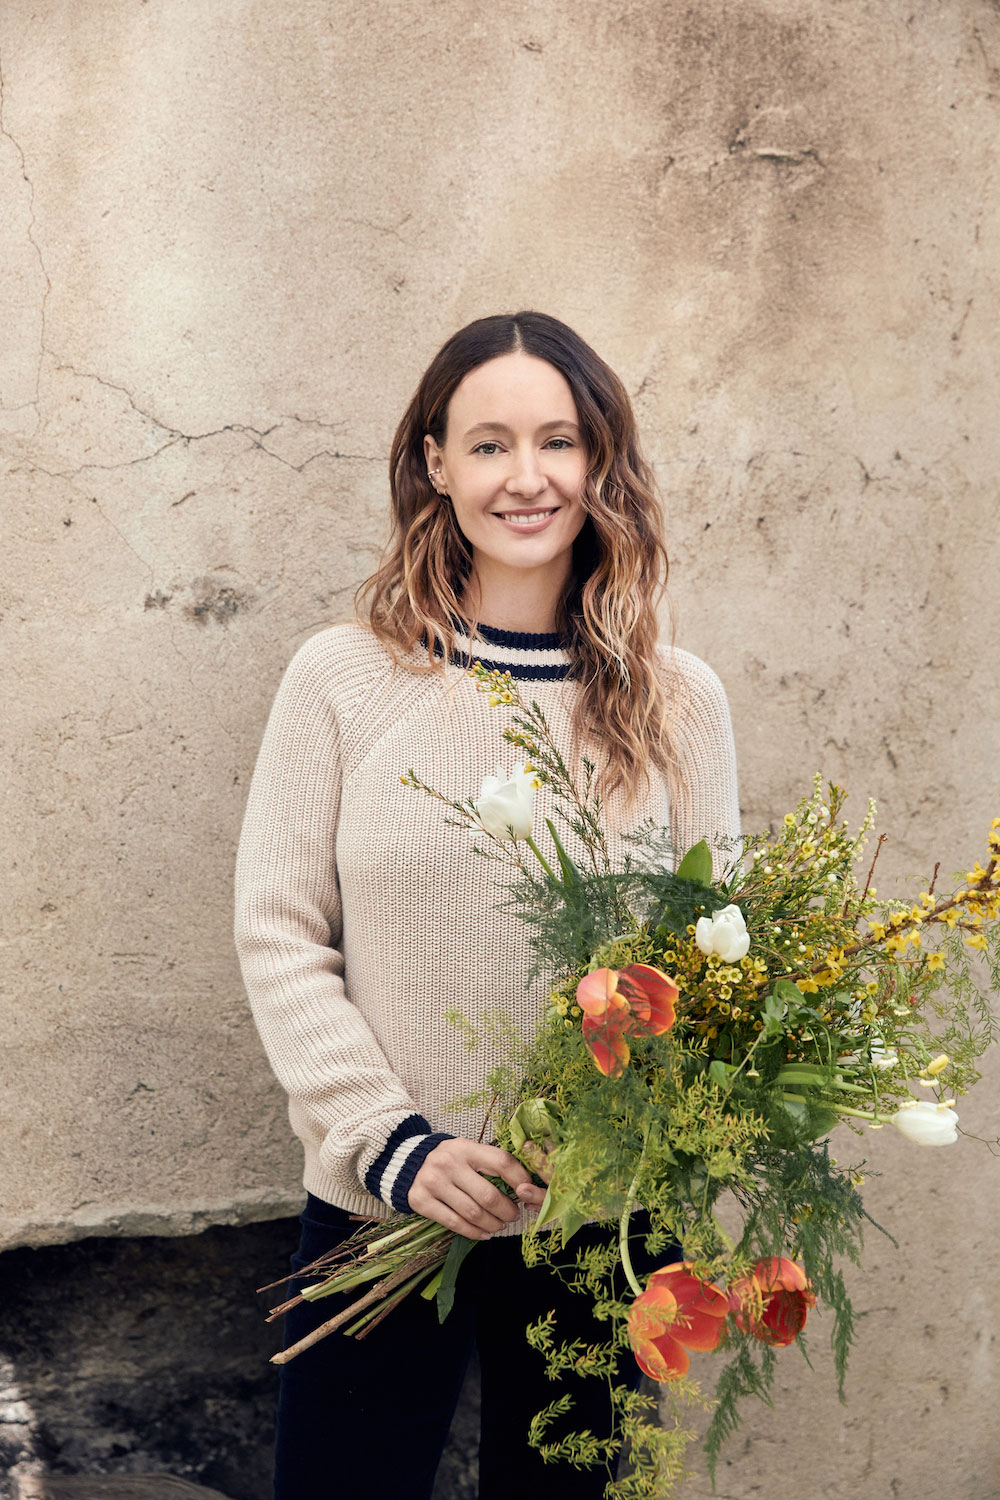 On her blog Rip & Tan, Kayne shares tips like how to arrange flowers